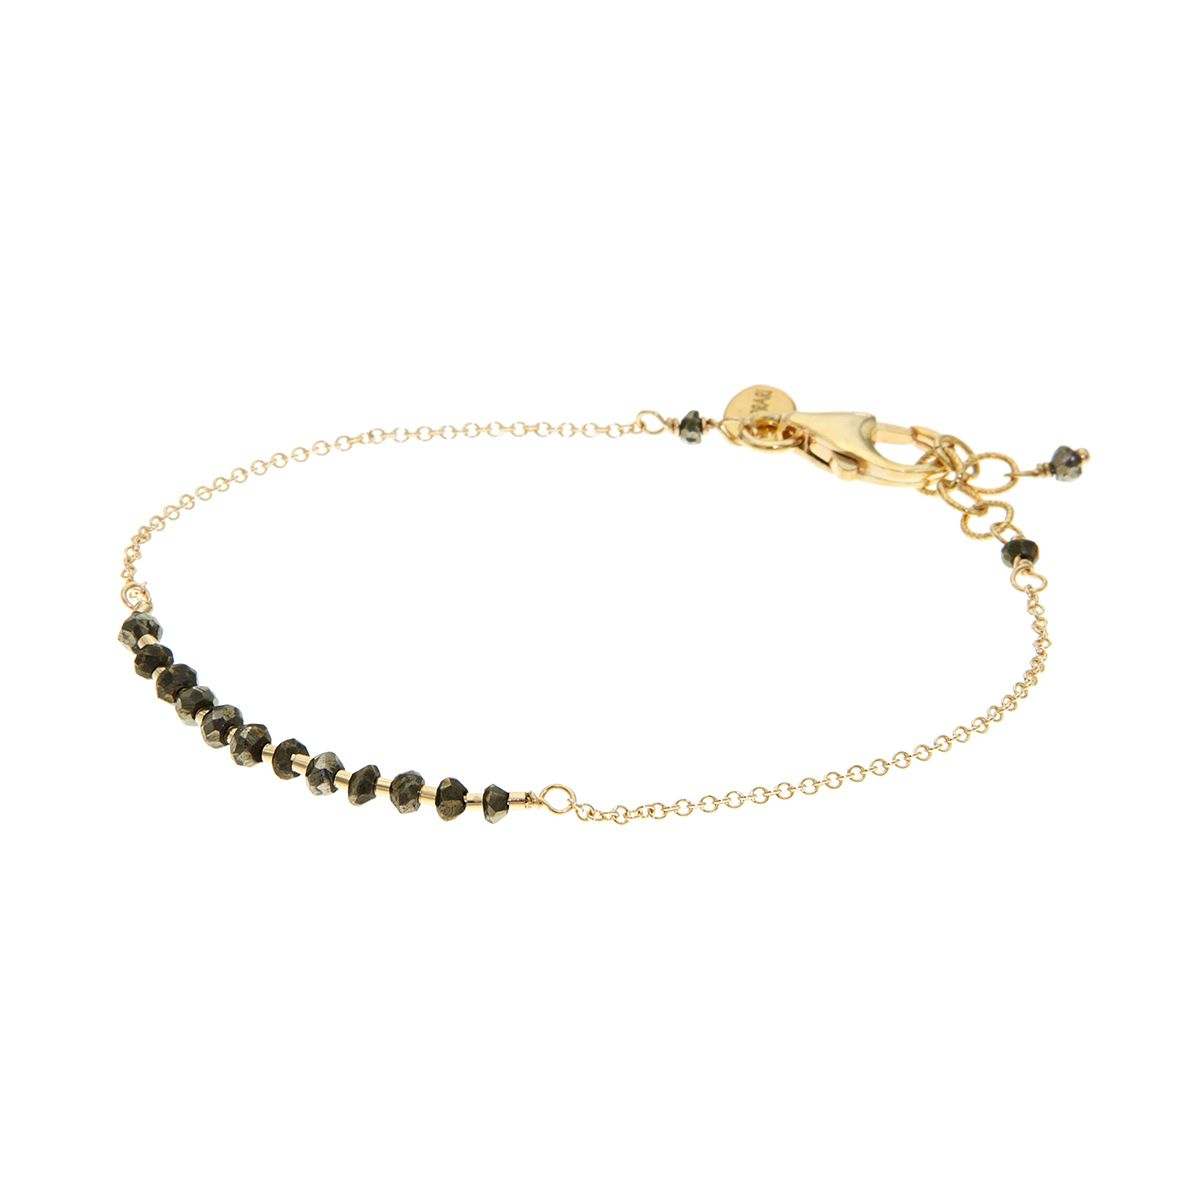 This elegant and feminine 14K gold filled bracelet is finished with a bar of gorgeous sparkly Pyrite and gold beads.